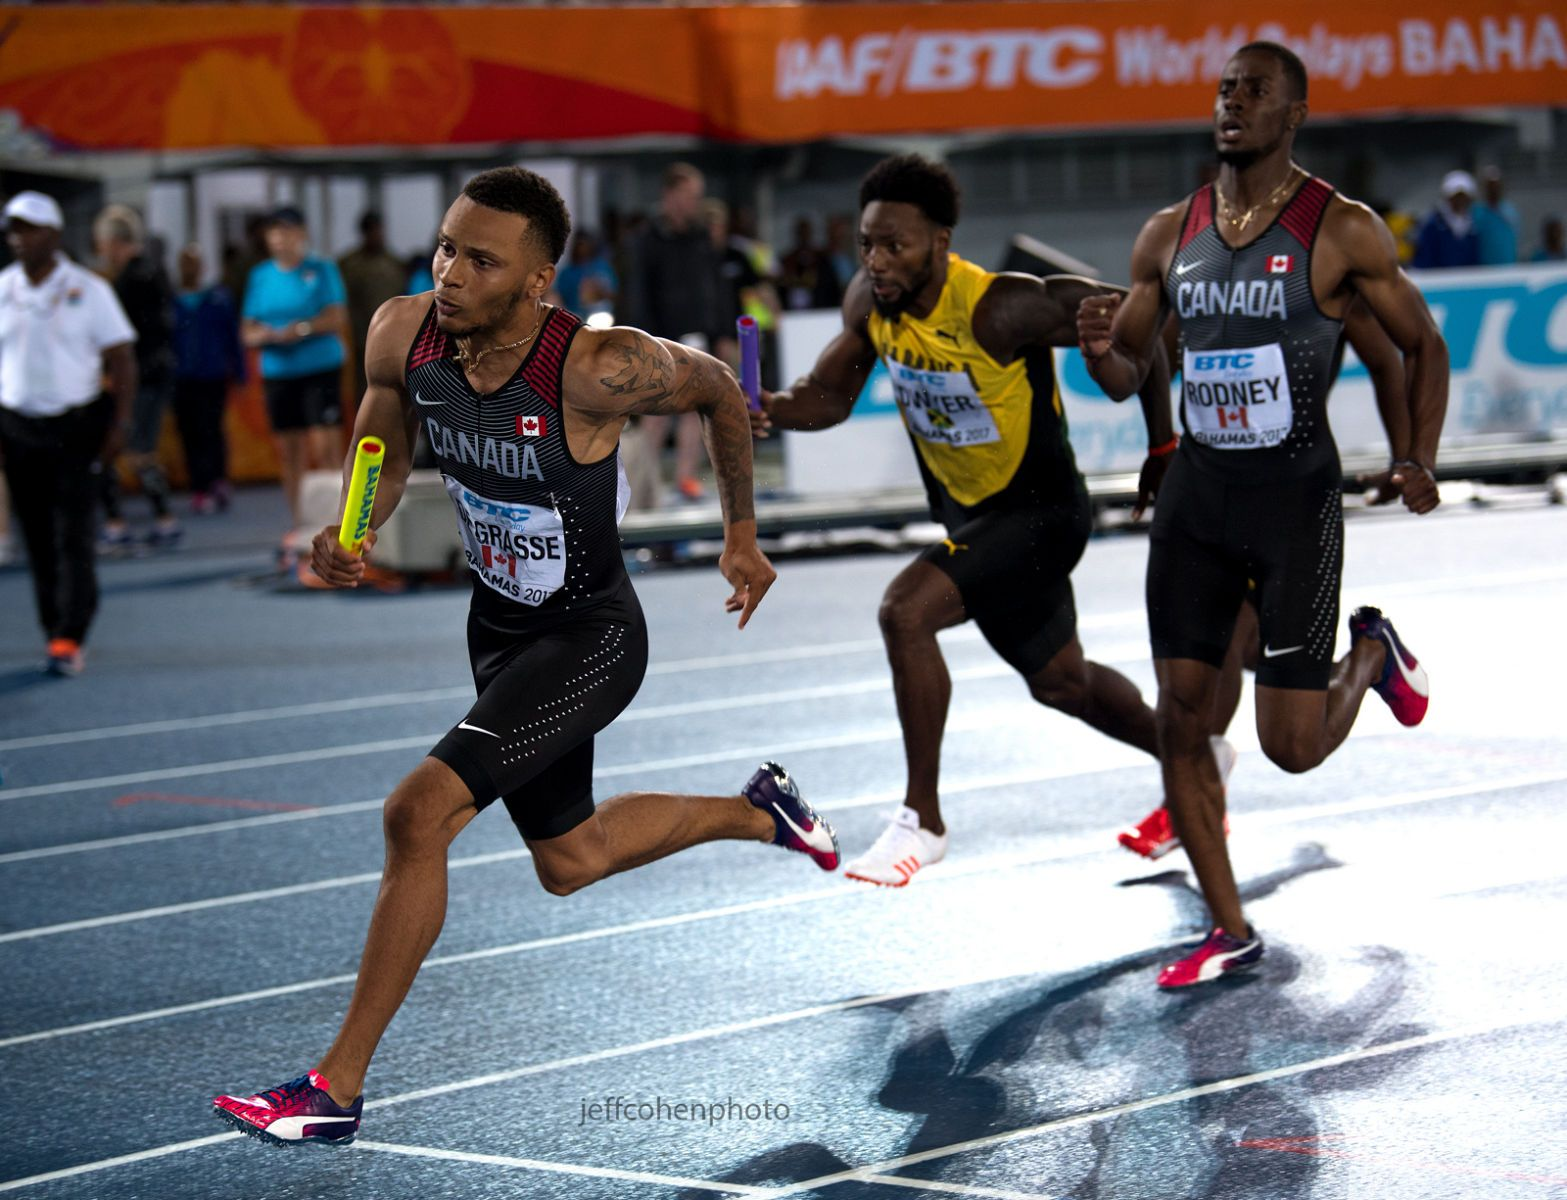 1r2017_bahamas_relays_day_2__de_grasse_4x200___jeff_cohen_photo__2988_web.jpg